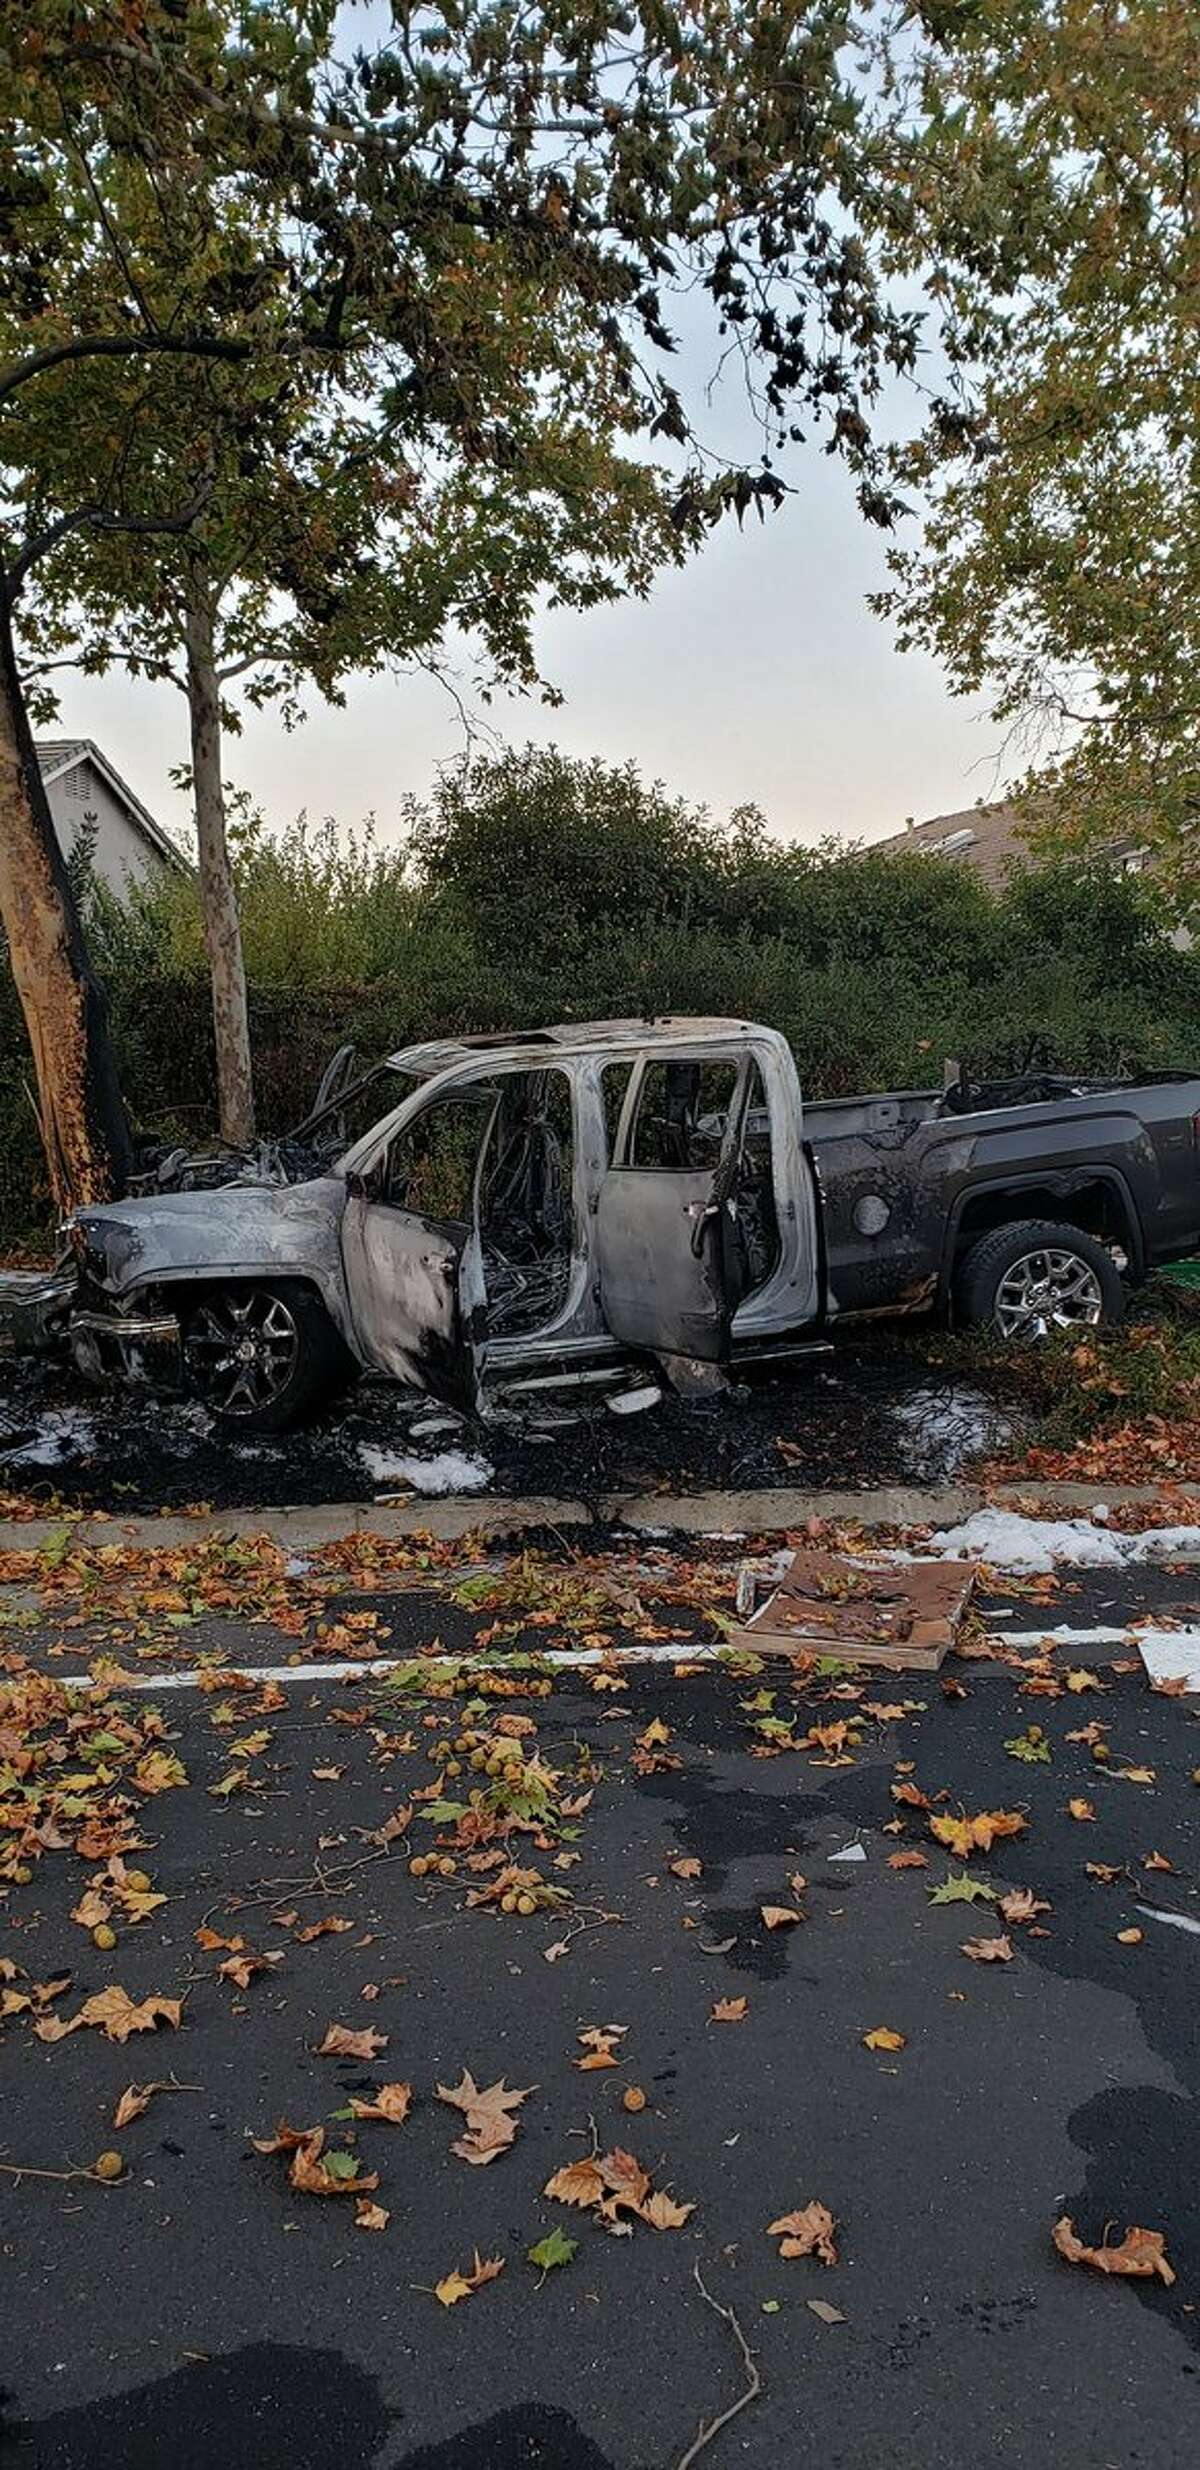 A good Samaritan is credited with pulling out the occupants of a crashed vehicle which caught on fire early Sunday morning.